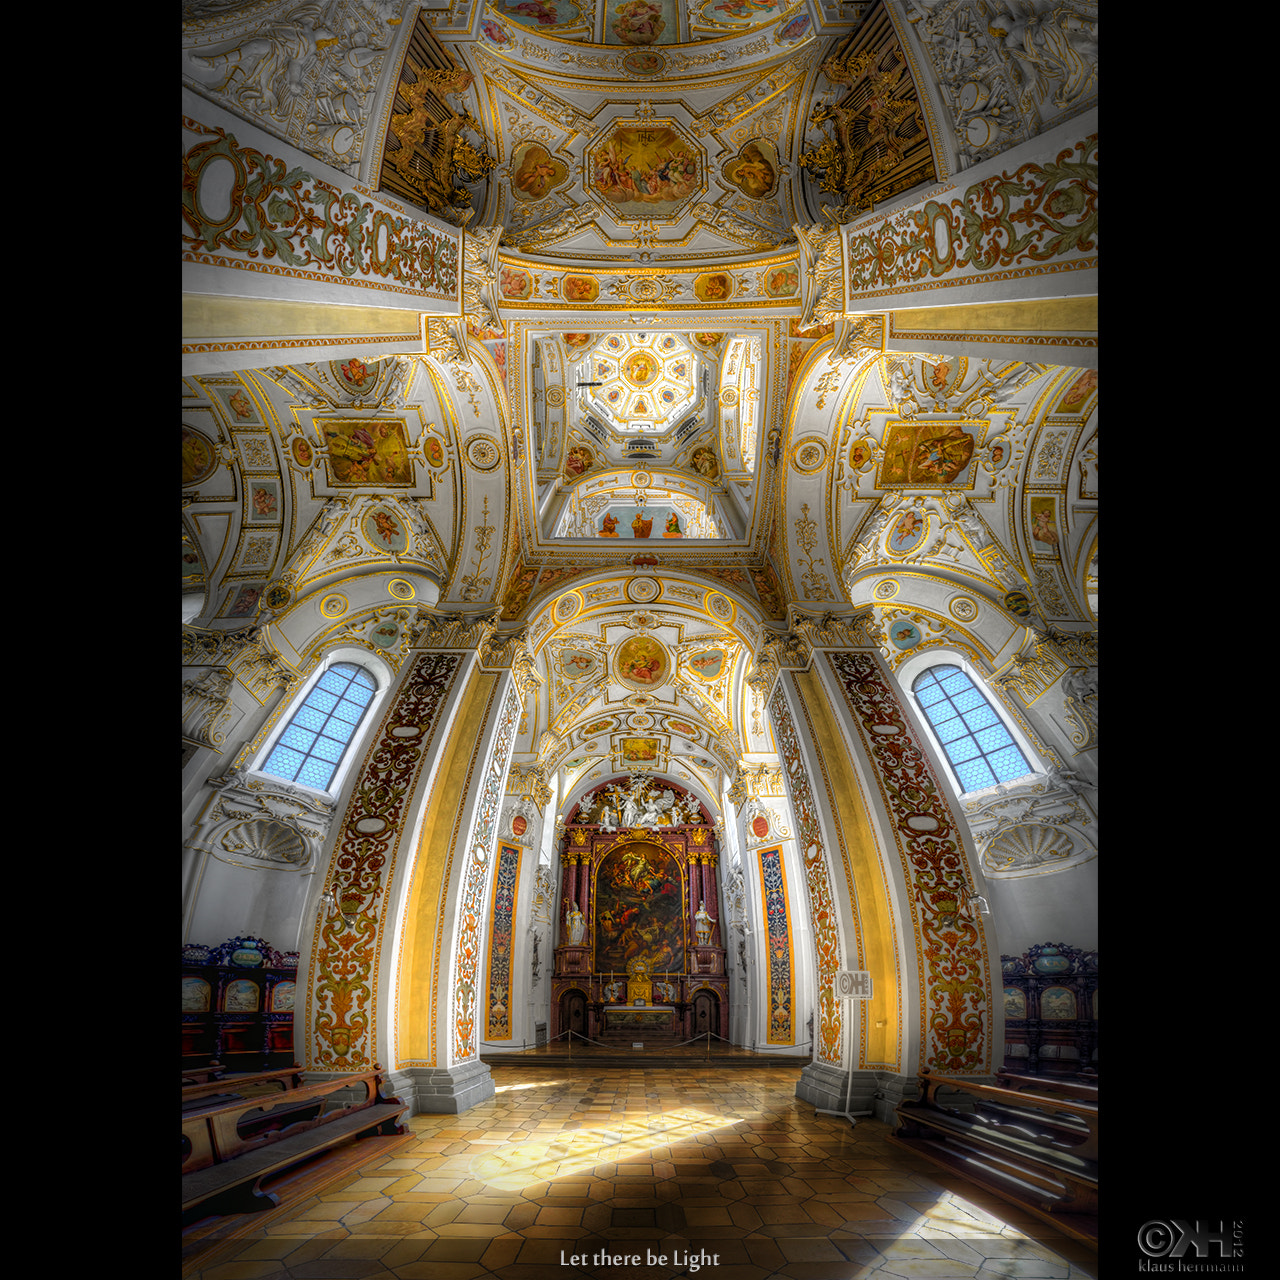 Photograph Let there be Light (HDR Vertorama) by Klaus Herrmann on 500px